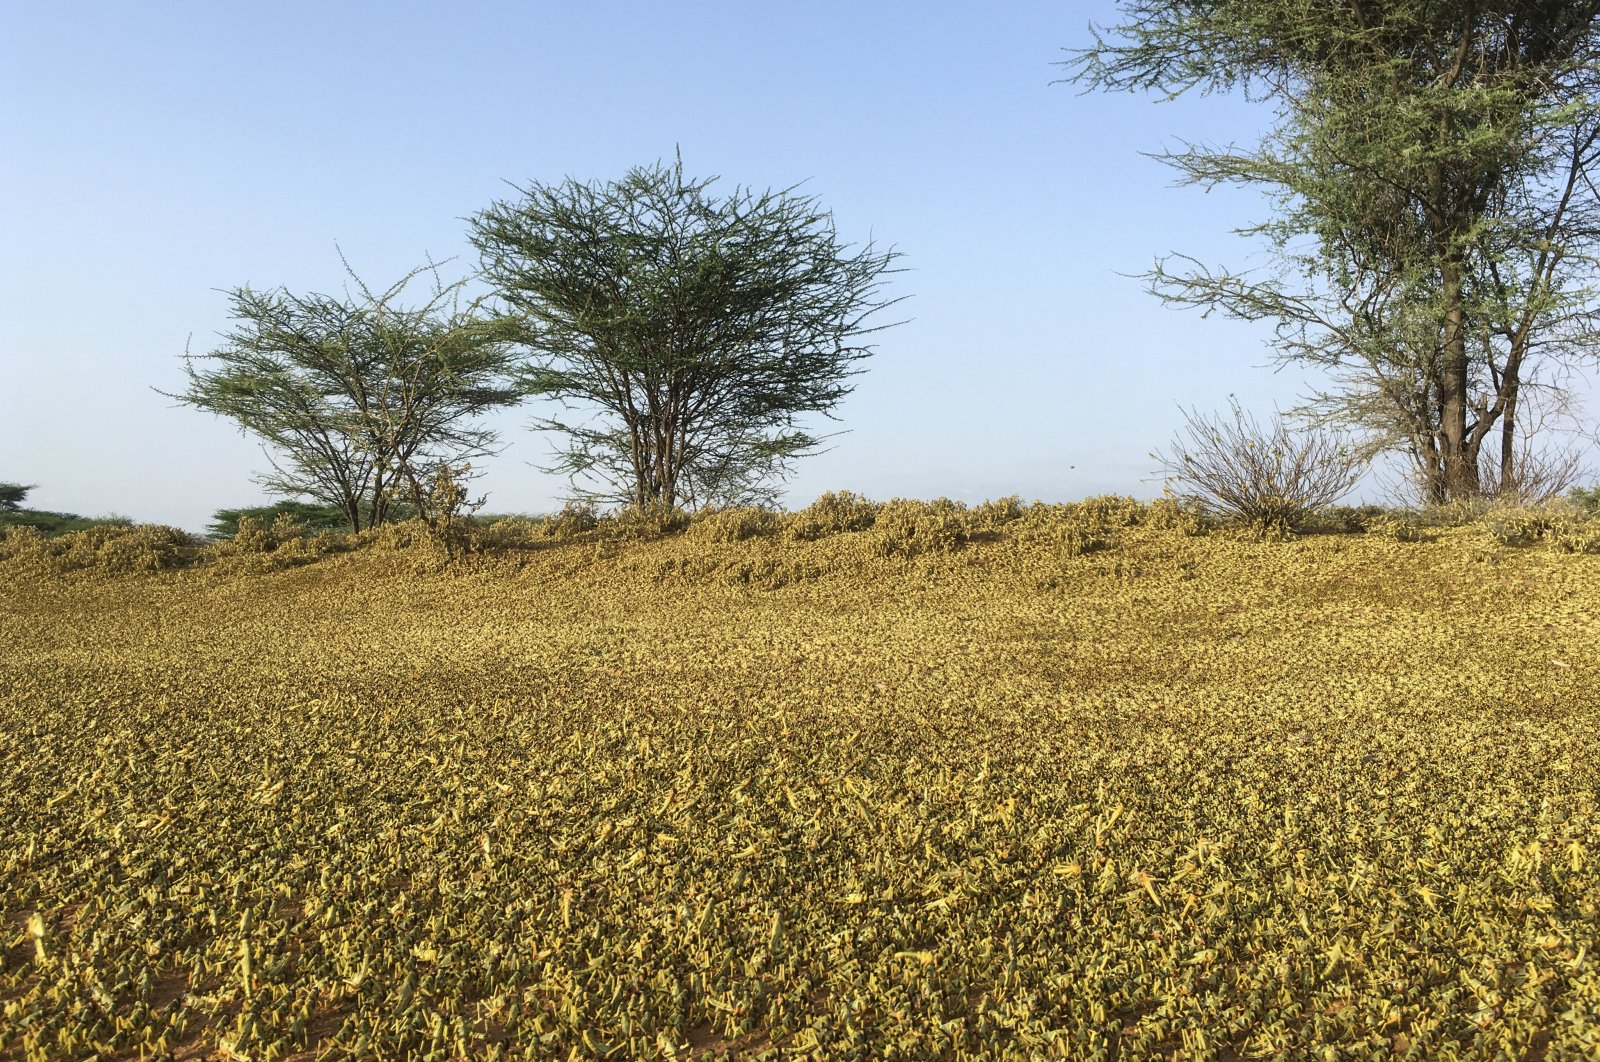 Locusts swarm on the ground south of Lodwar town in Turkana county, Kenya, June 23, 2020. (AP Photo)